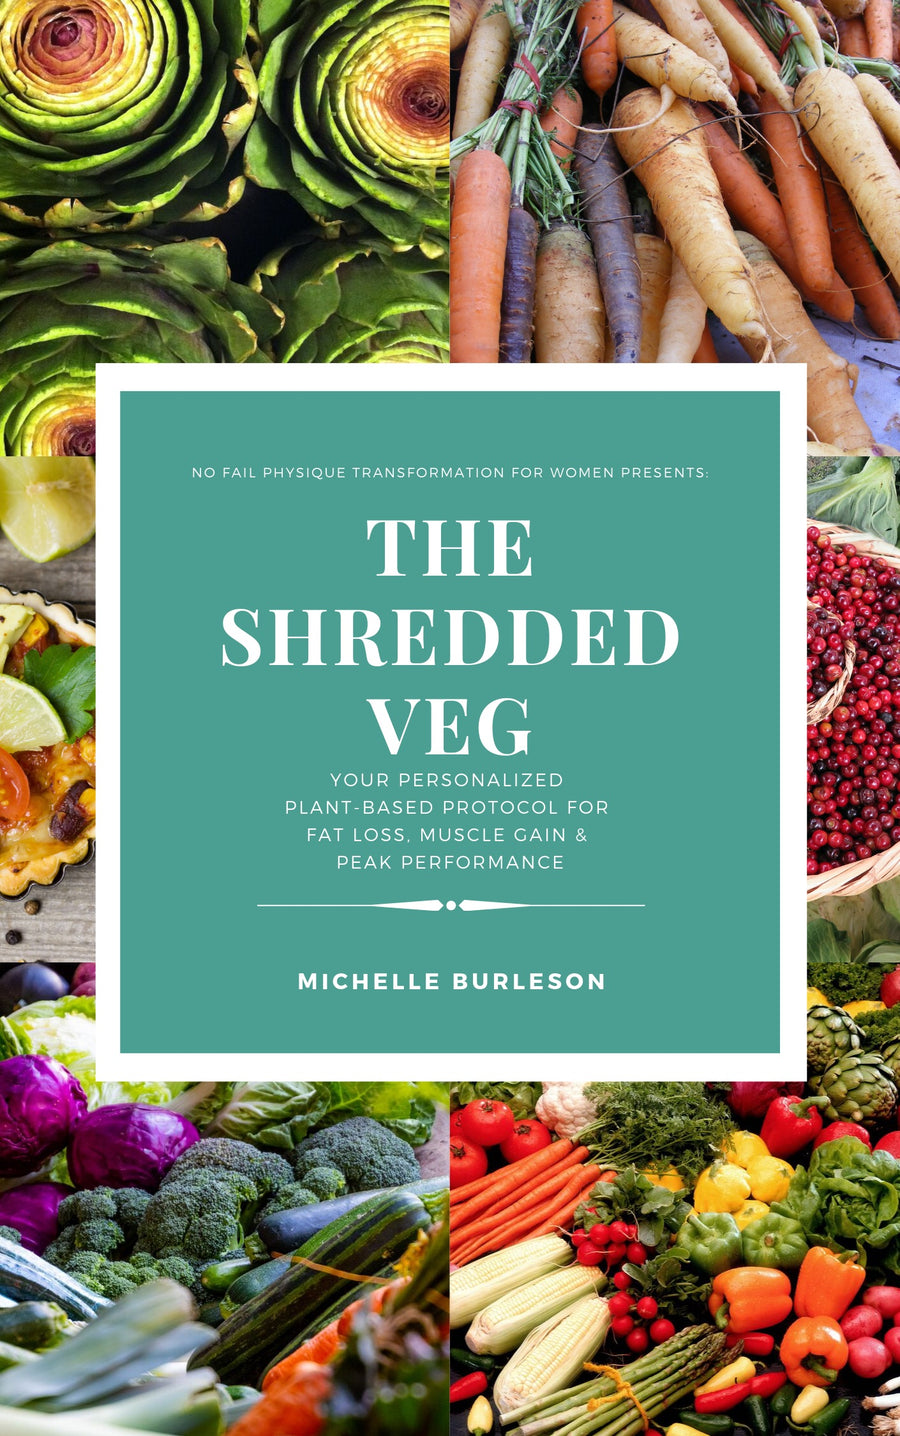 The Shredded Veg: Plant Based Body Transformation Protocol For Women